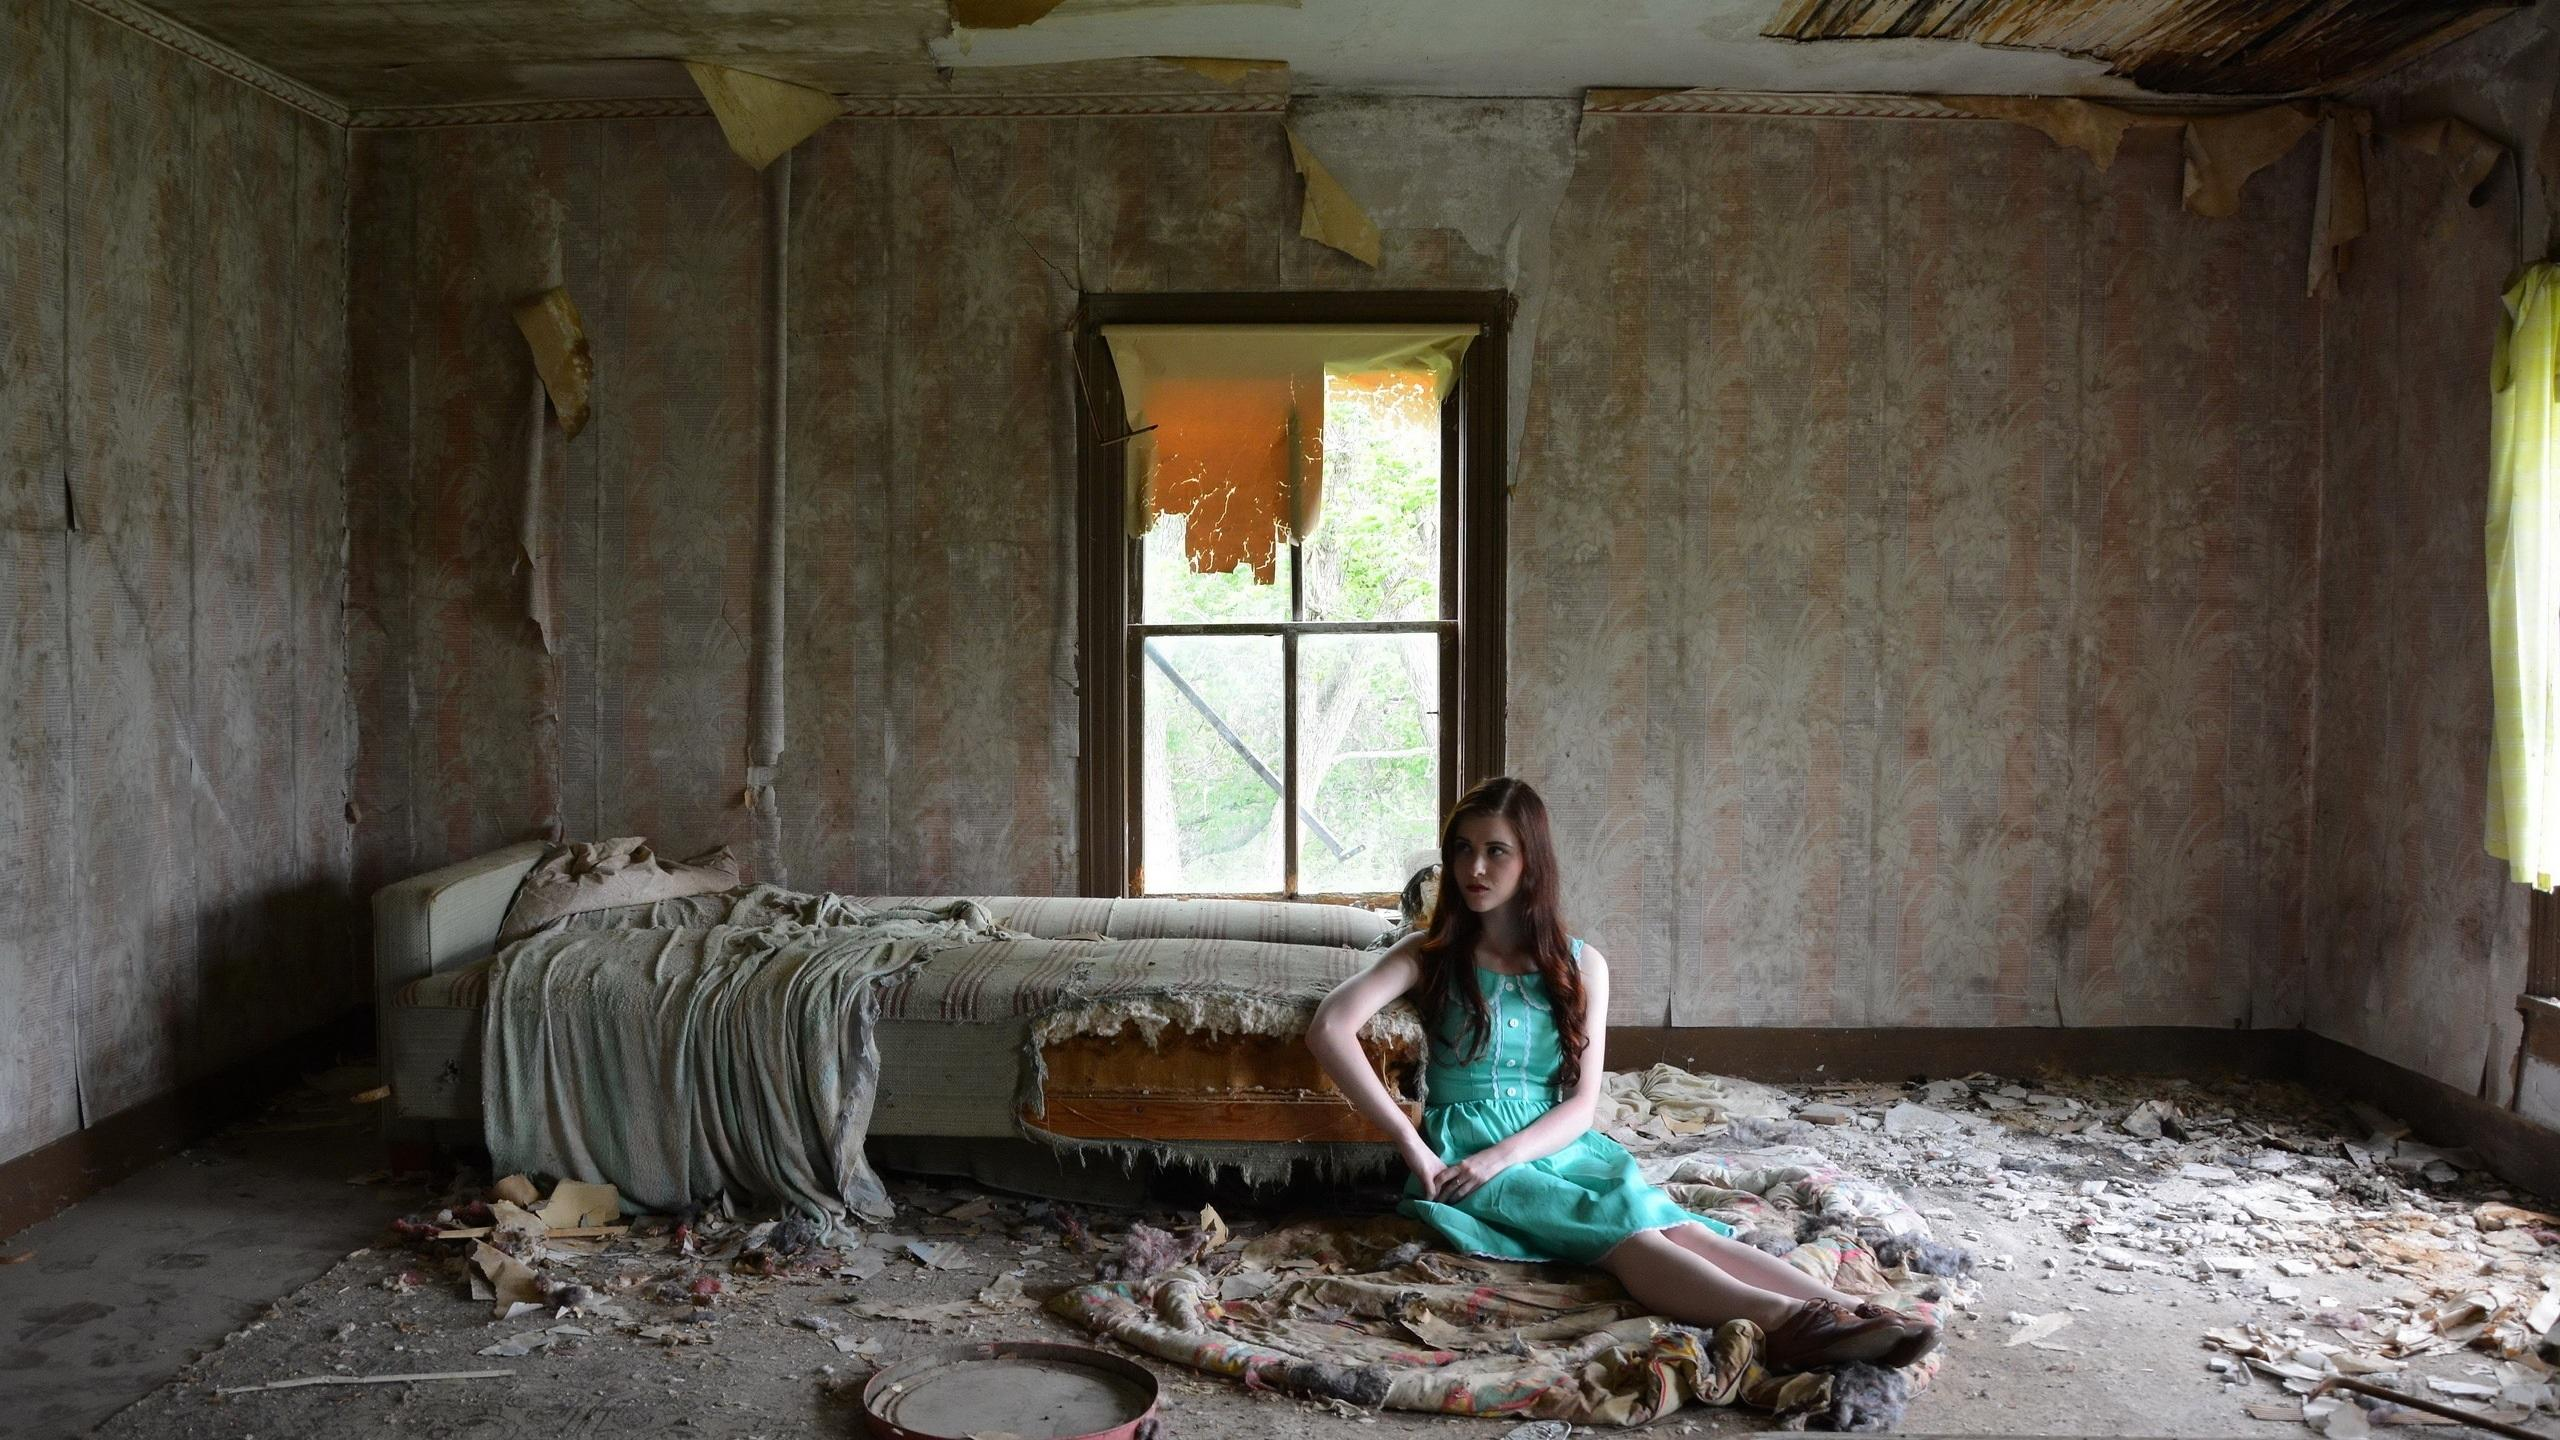 HD Woman sitting in the abandoned room Wallpaper  Download Free  148553